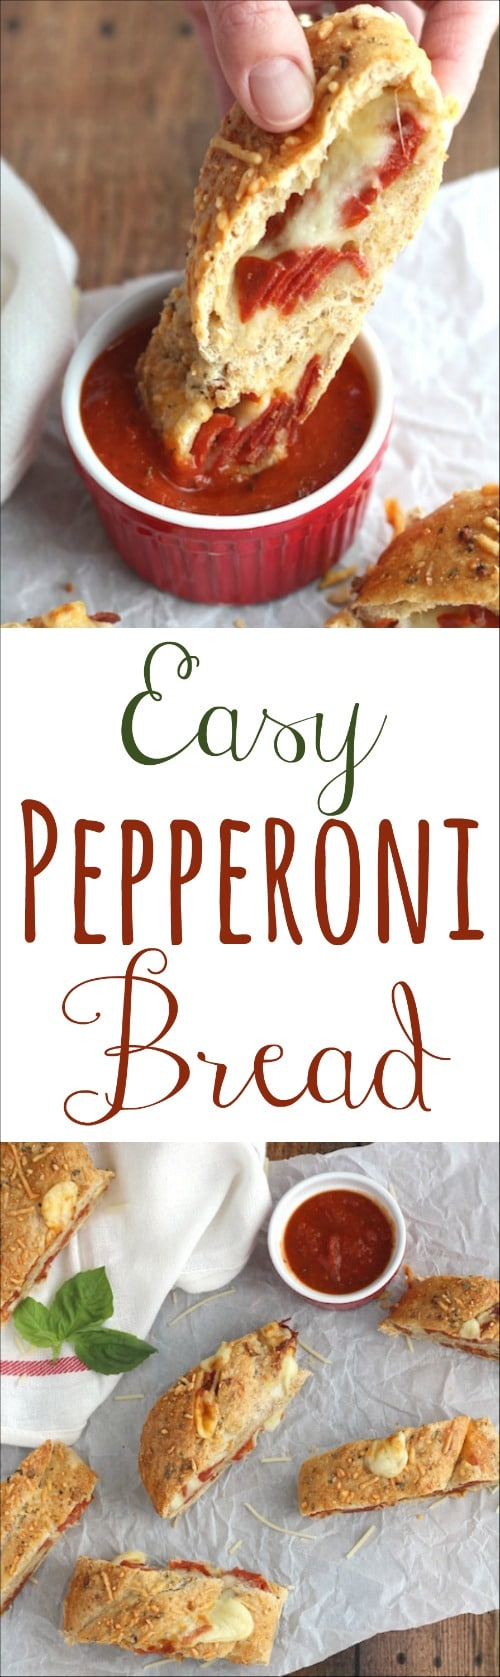 Easy Pepperoni Bread Recipe {www.TwoHealthyKitchens.com}